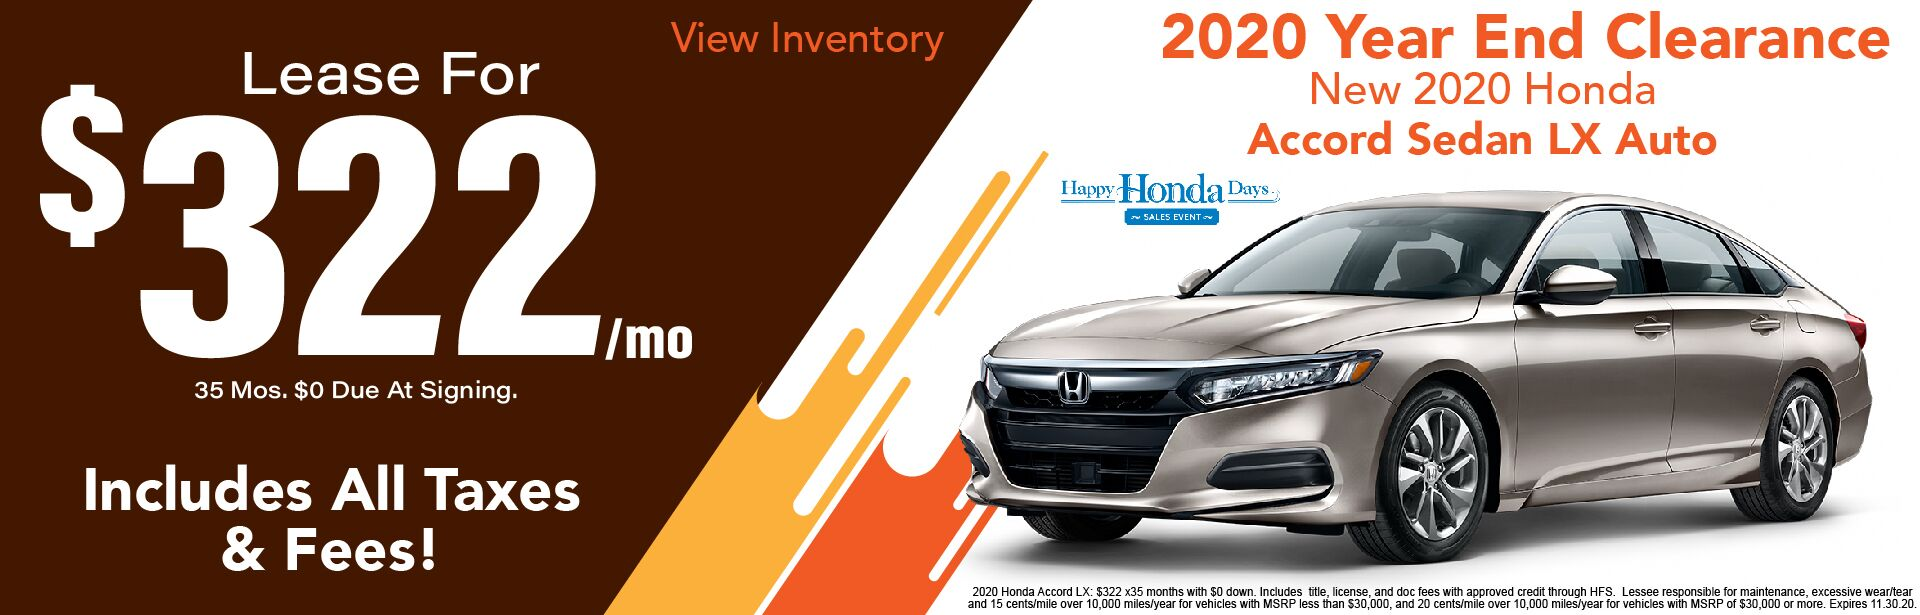 2020 Honda Accord LX $322/Month Lease